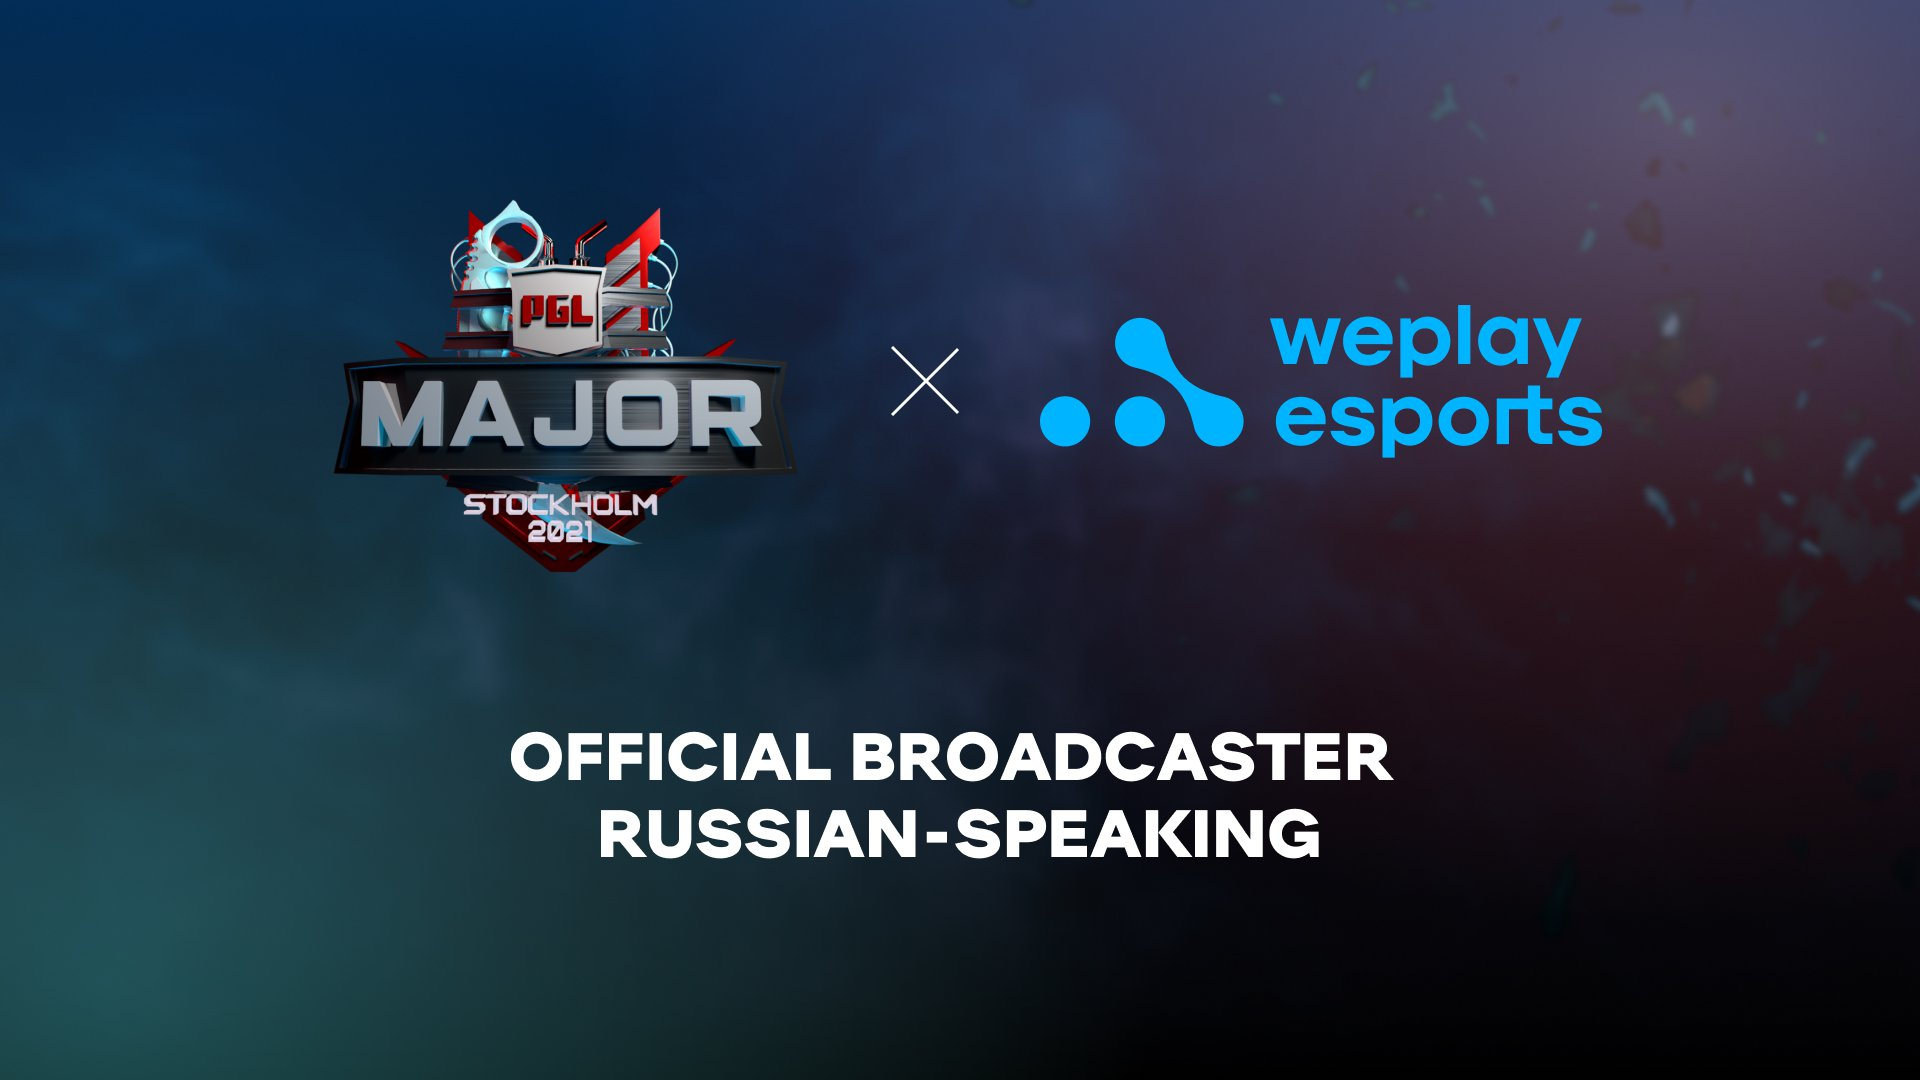 WePlay Esports is the official broadcaster of PGL Major Stockholm 2021. Image: WePlay Holding